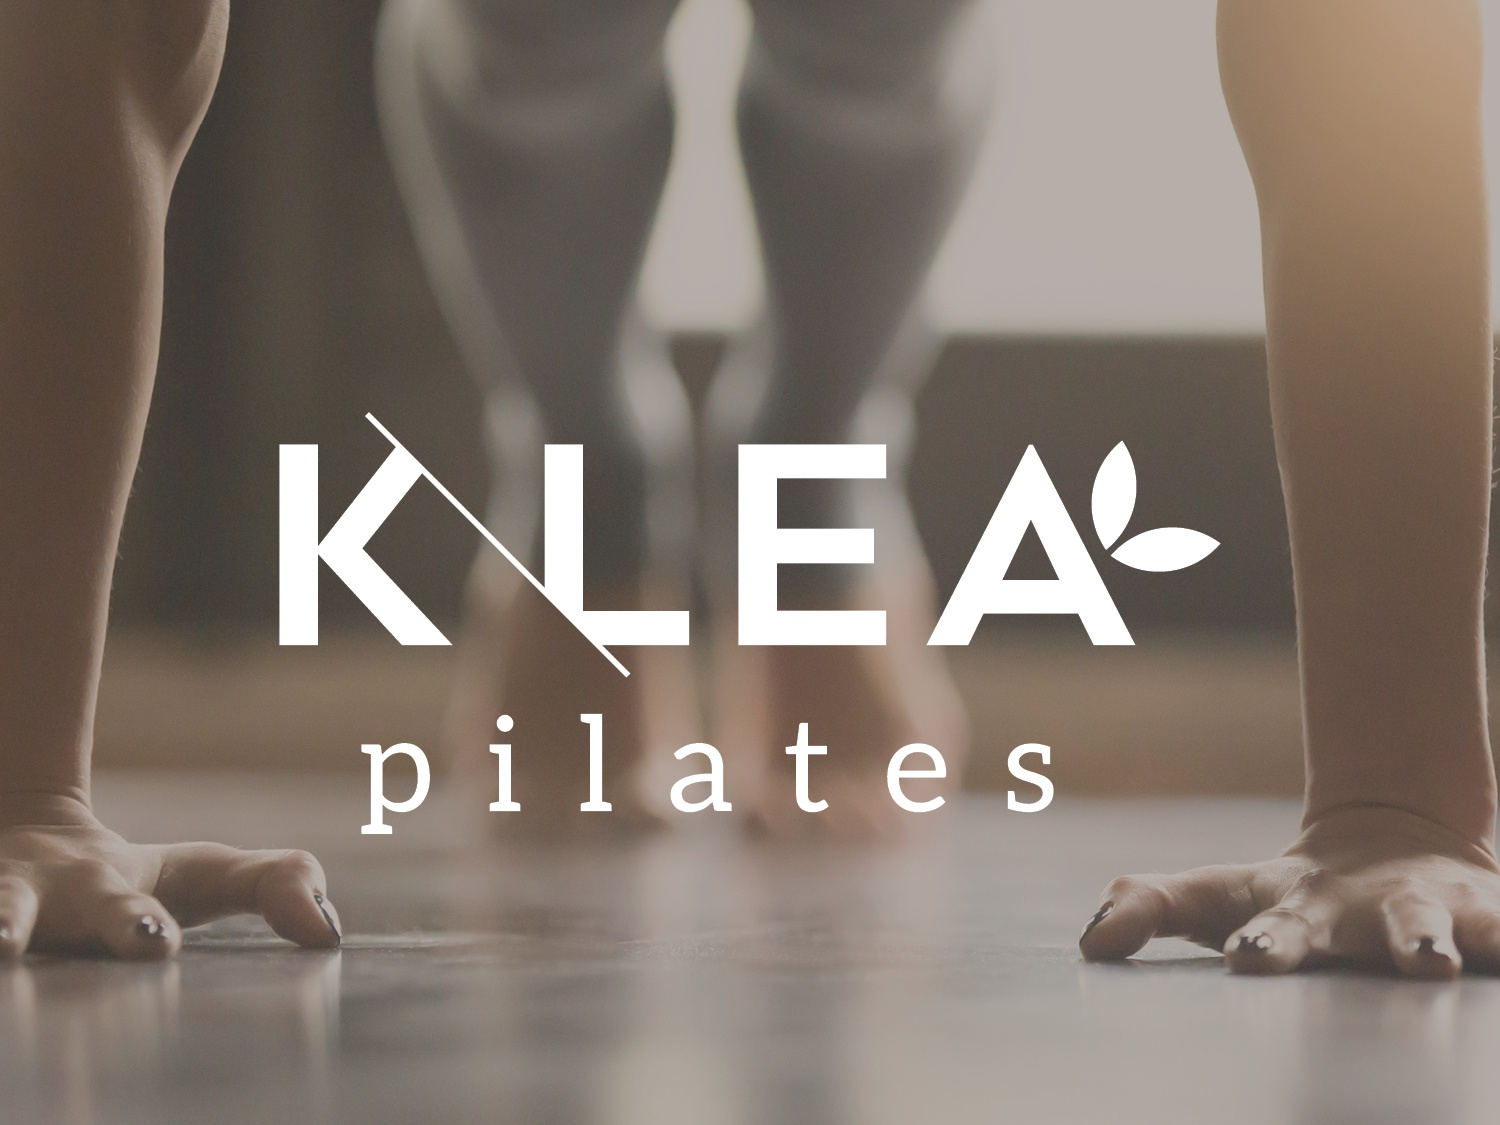 Klea Pilates vector creative graphic design business brand logo design icon branding mark typography design logo